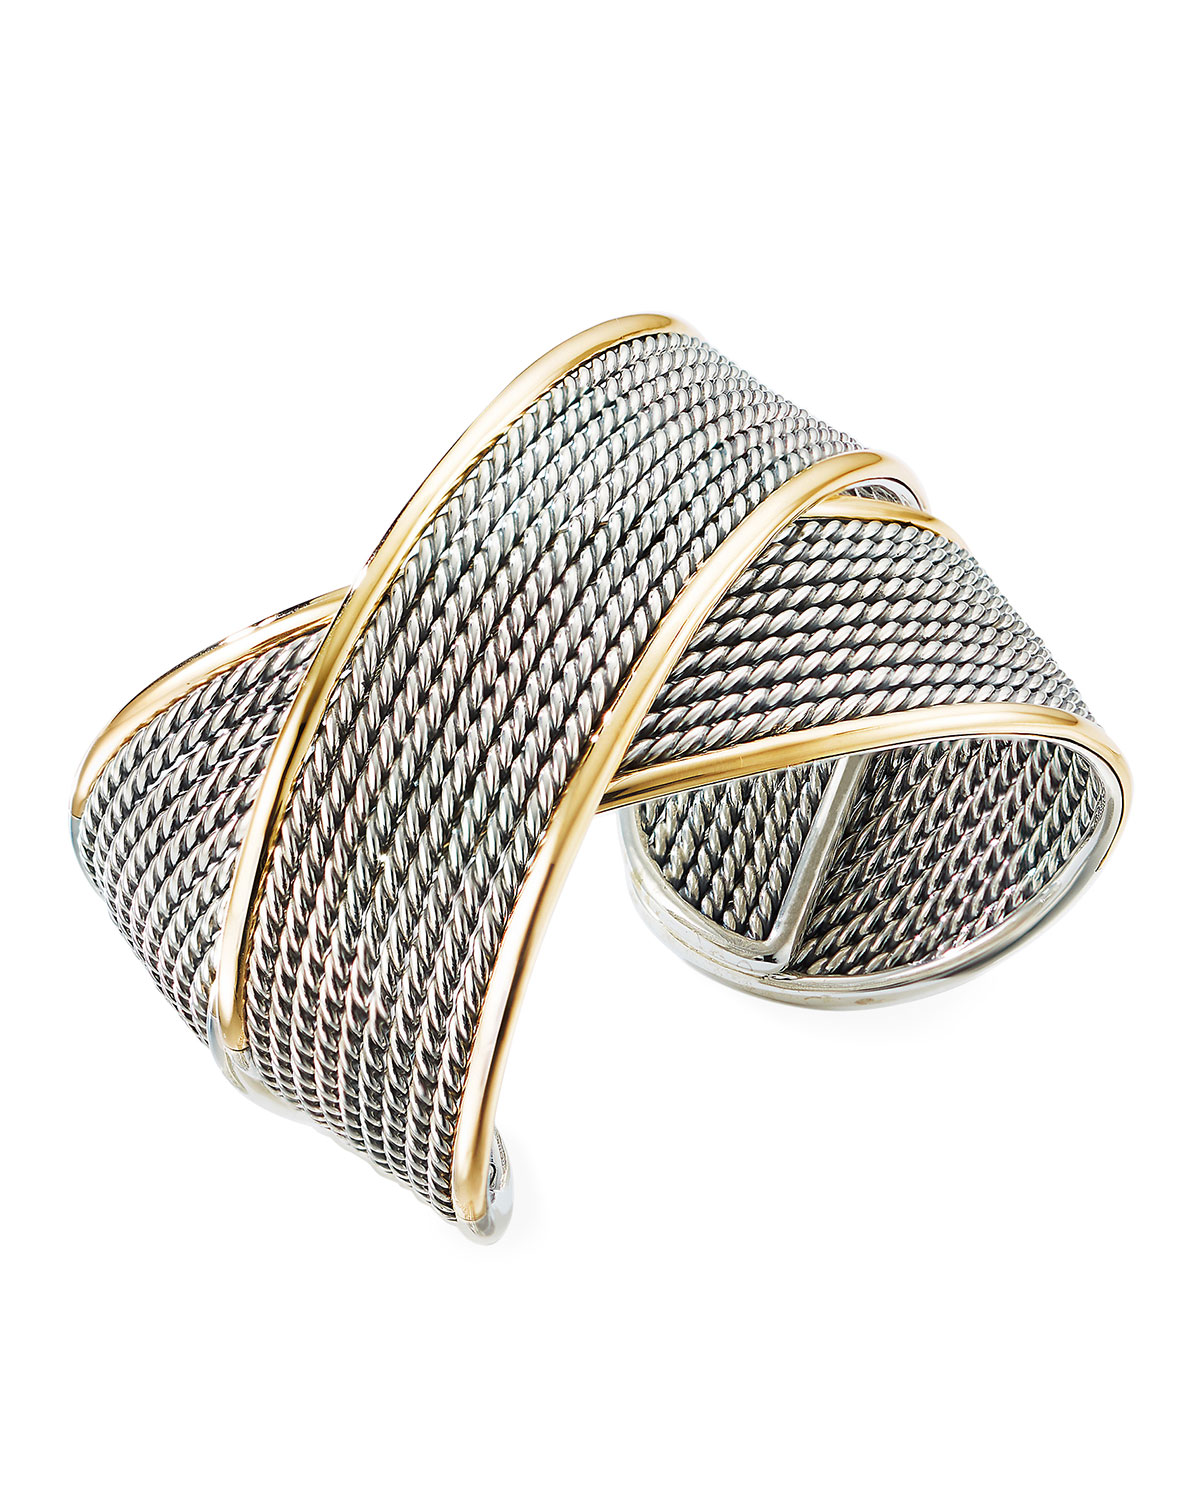 David Yurman Origami Large Crossover Cuff w/ 18k Gold